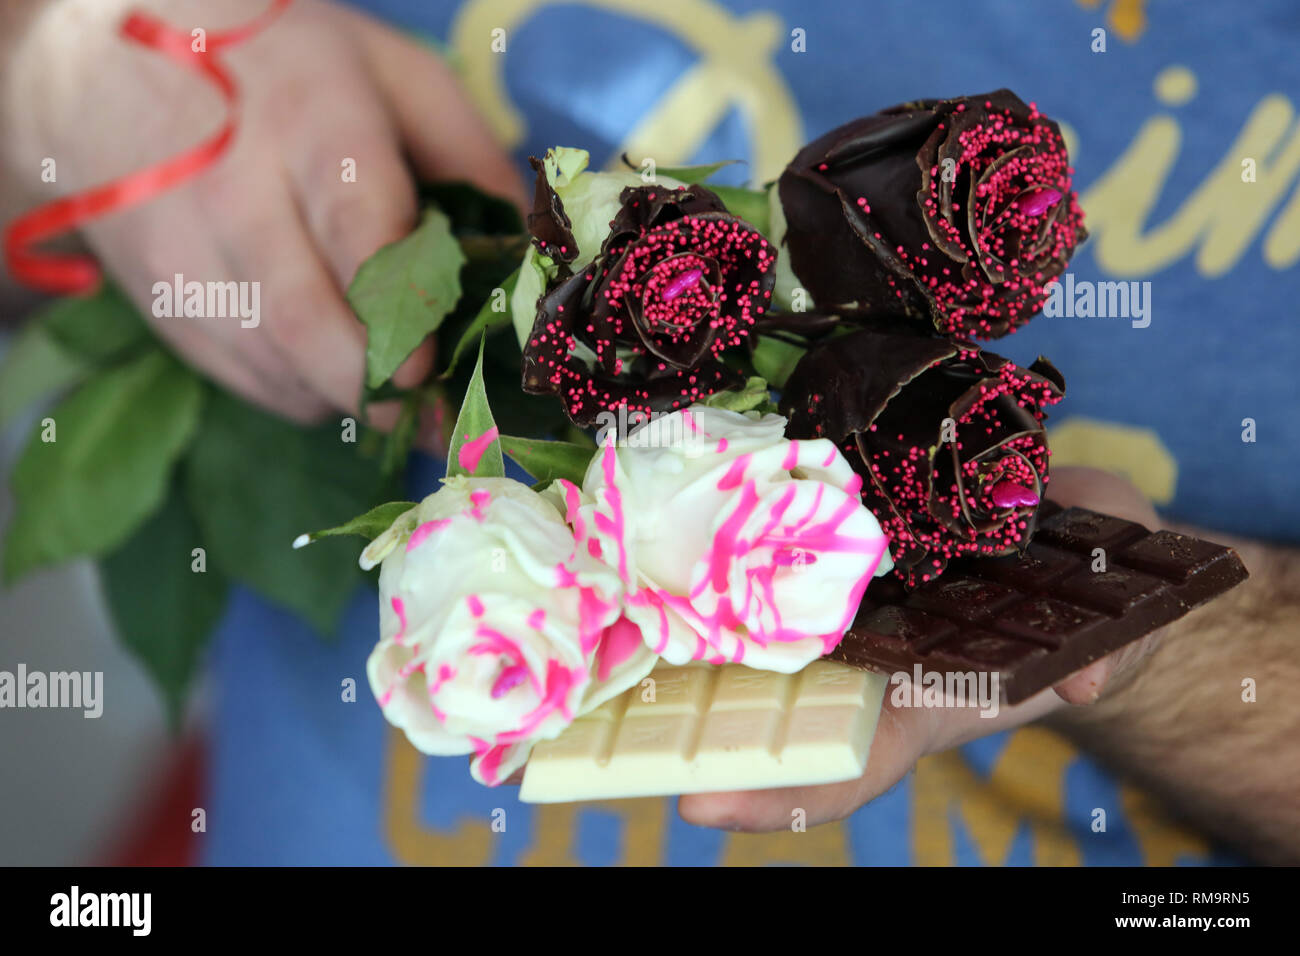 7c47db4a9778 Invented Flower Stock Photos & Invented Flower Stock Images - Alamy